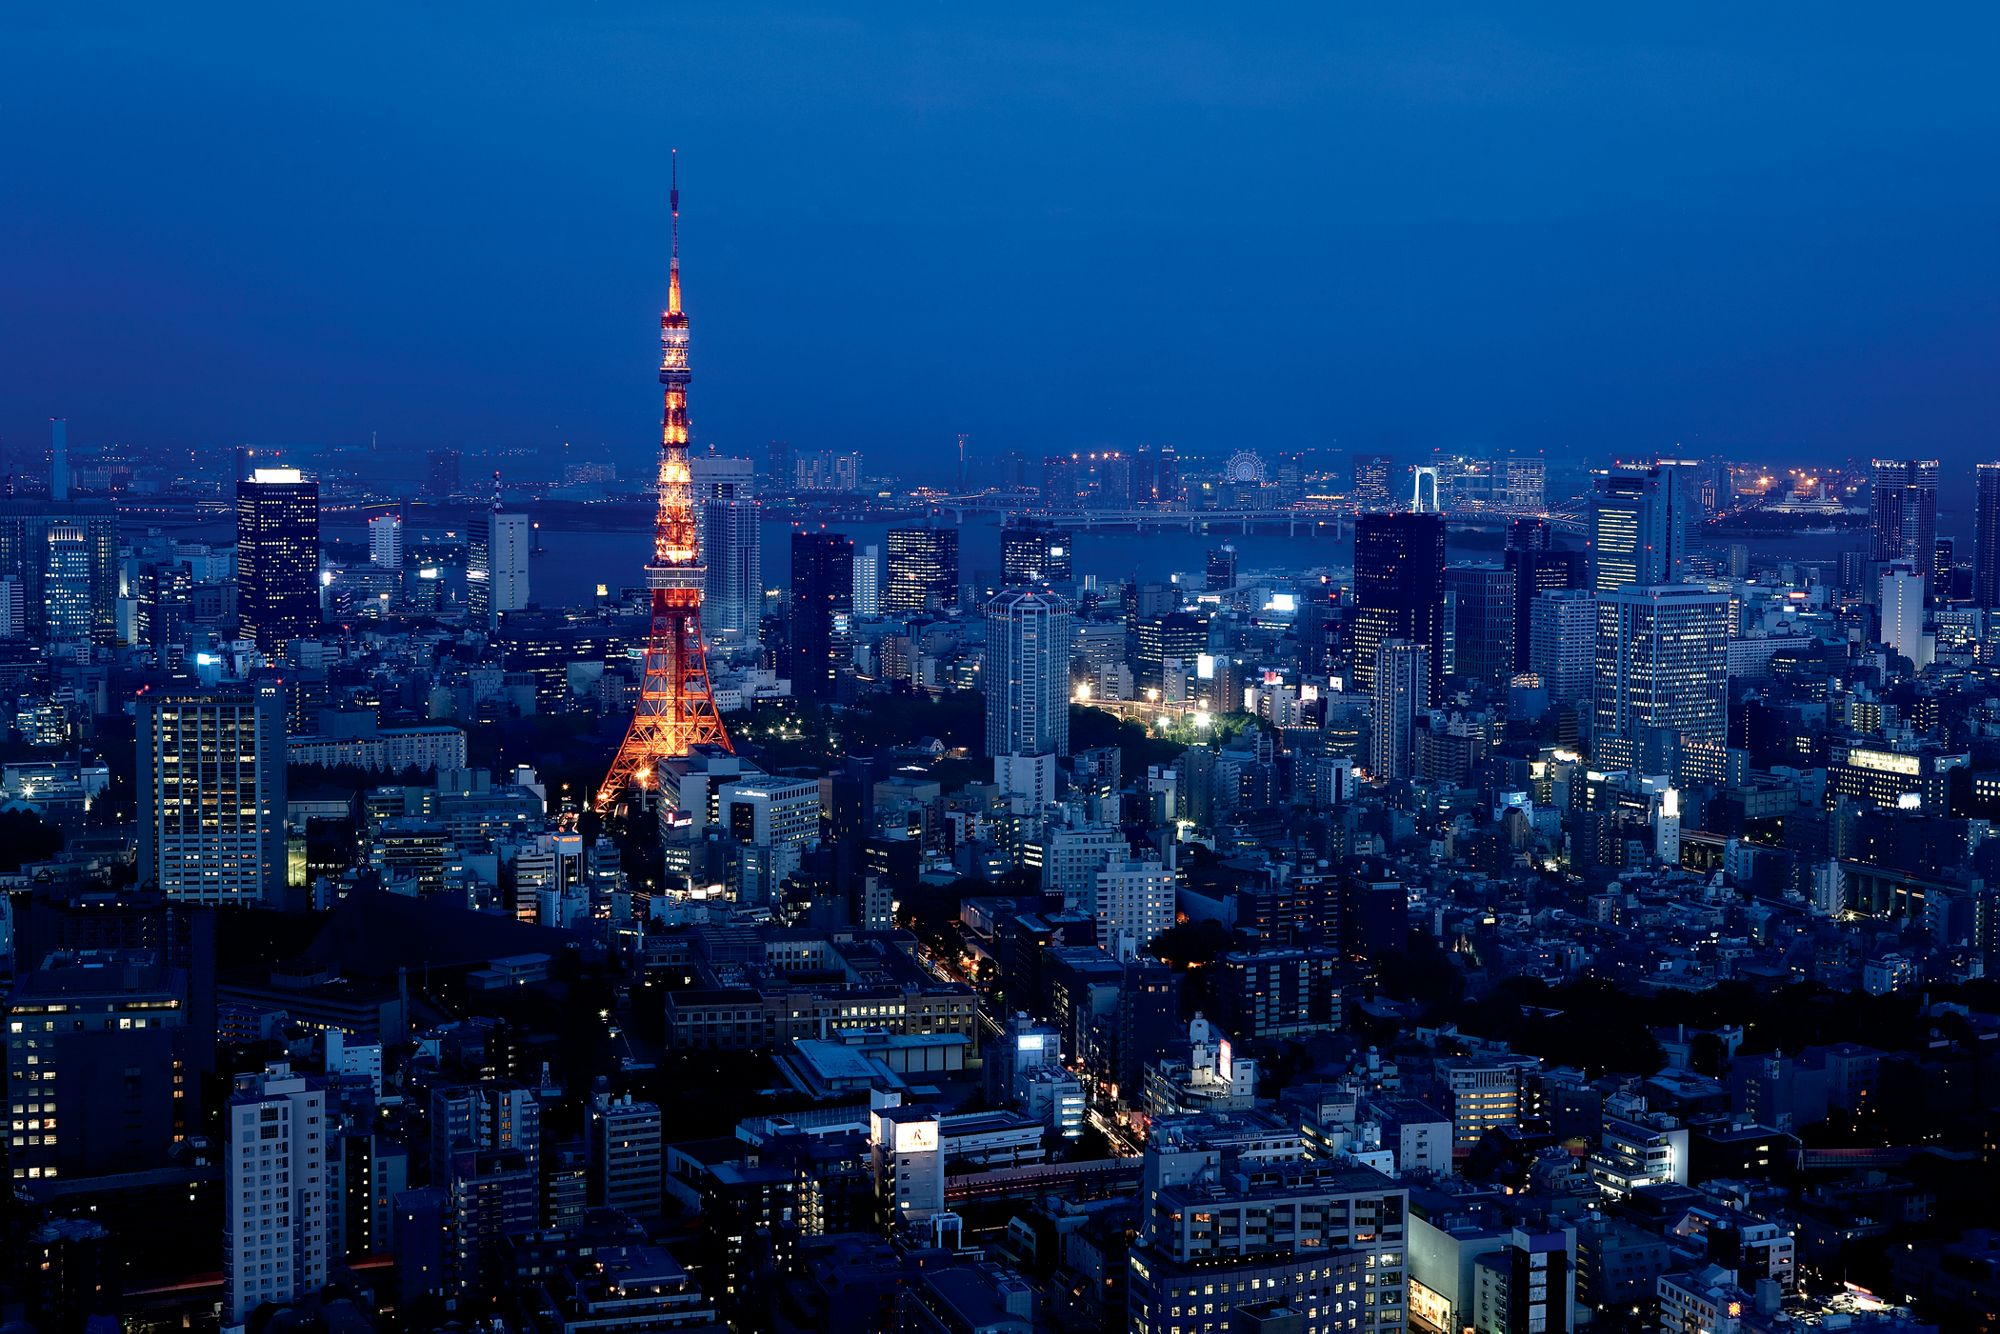 Evening view of the Tokyo skyline, which includes buildings, water and the Tokyo Tower